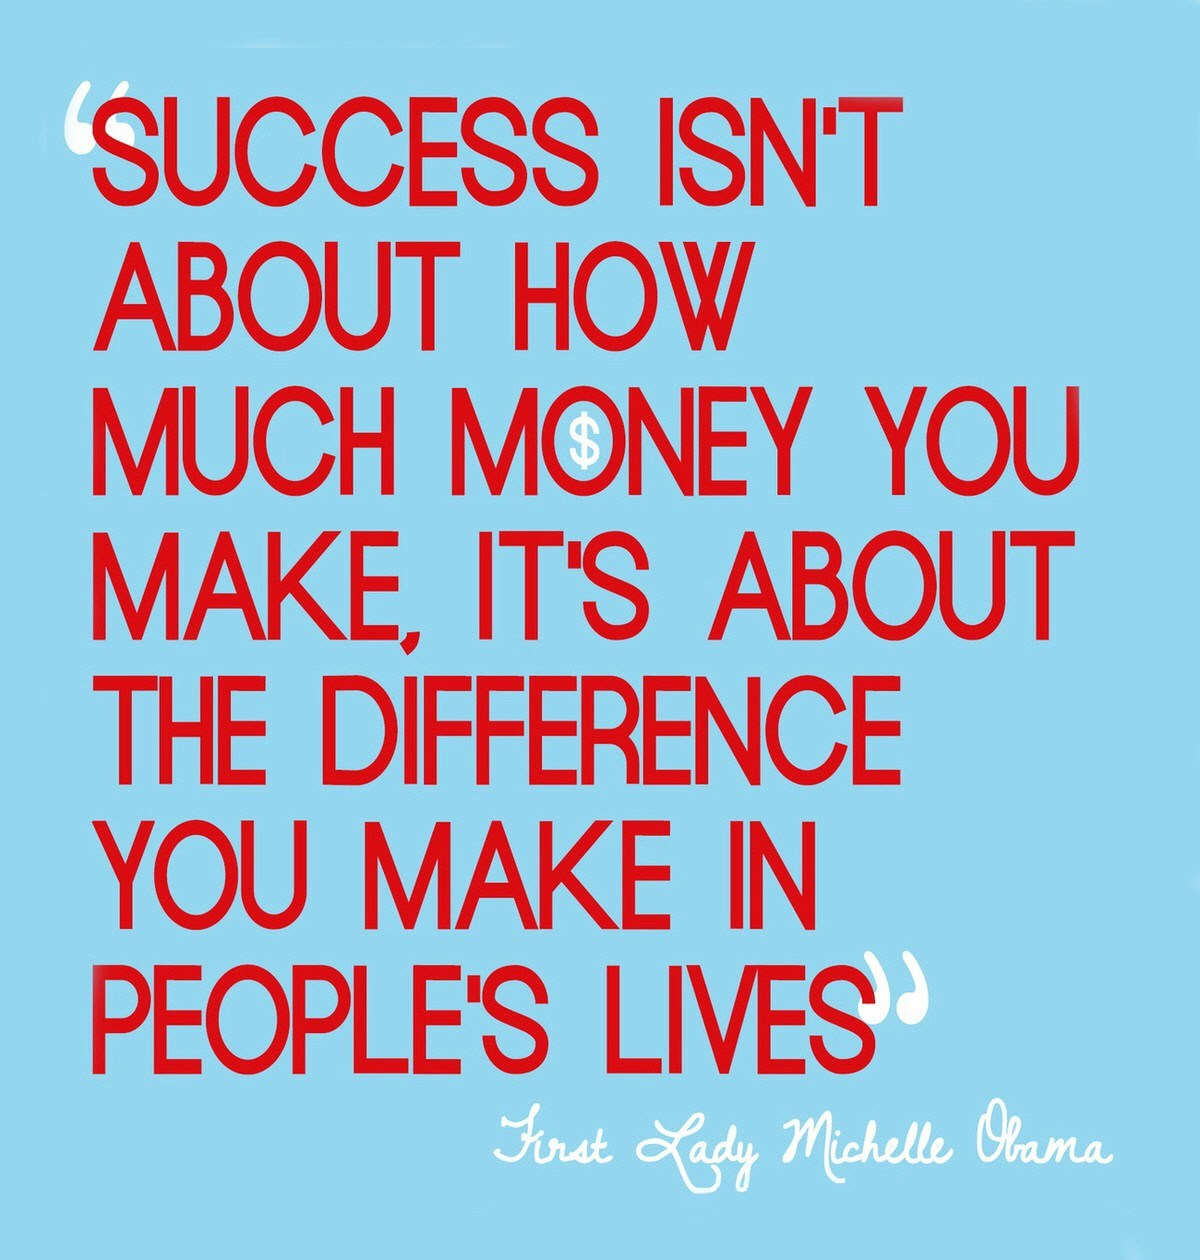 Quotes About Love: Money Donation Quotes. QuotesGram